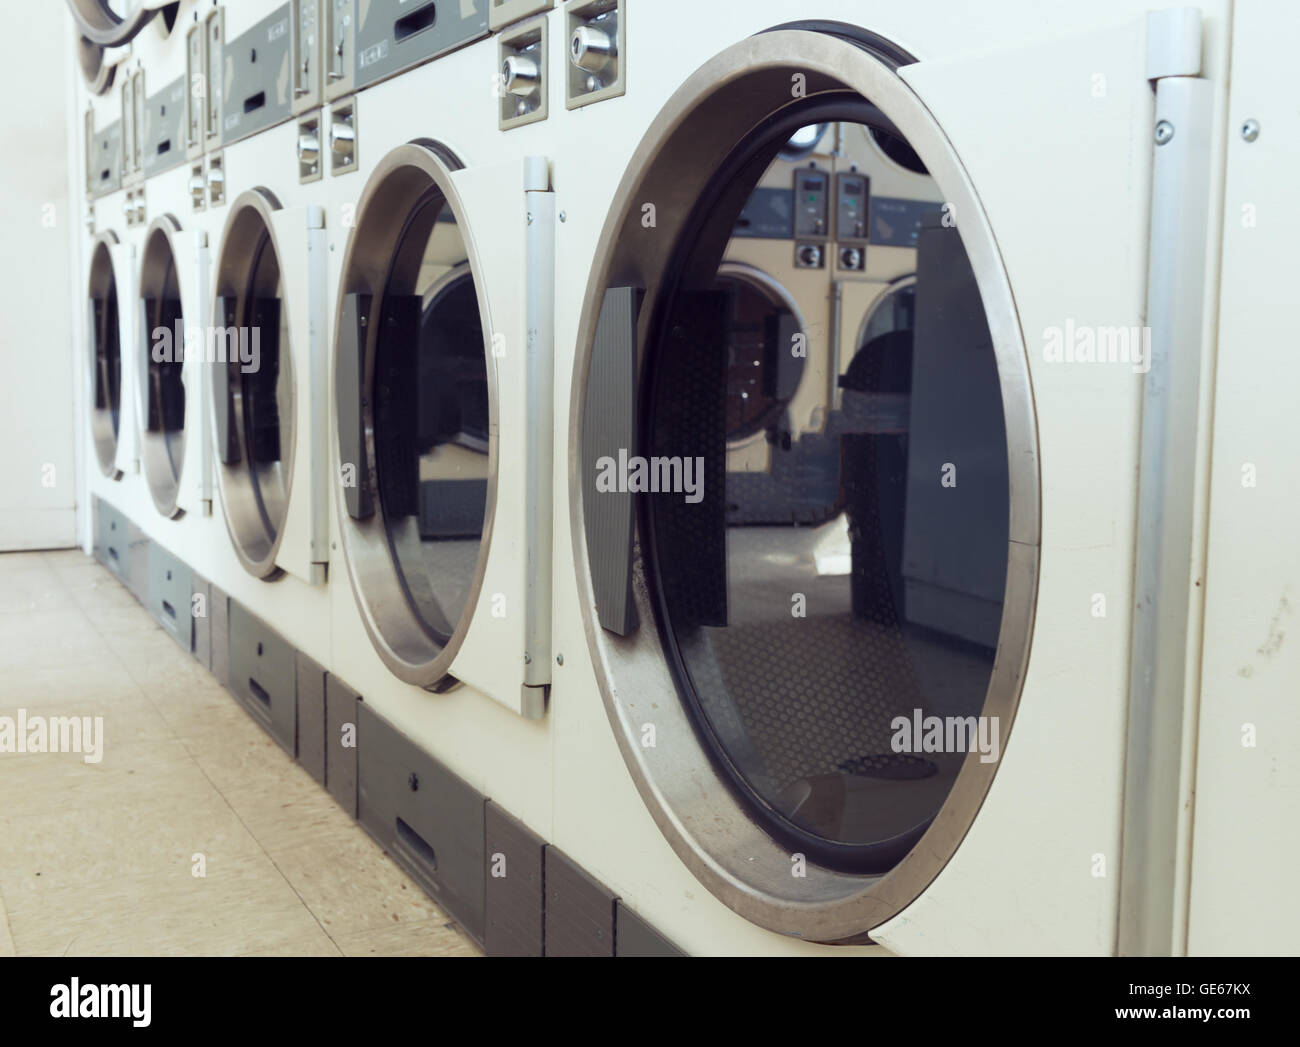 industrial laundry machines in laundrette - Stock Image